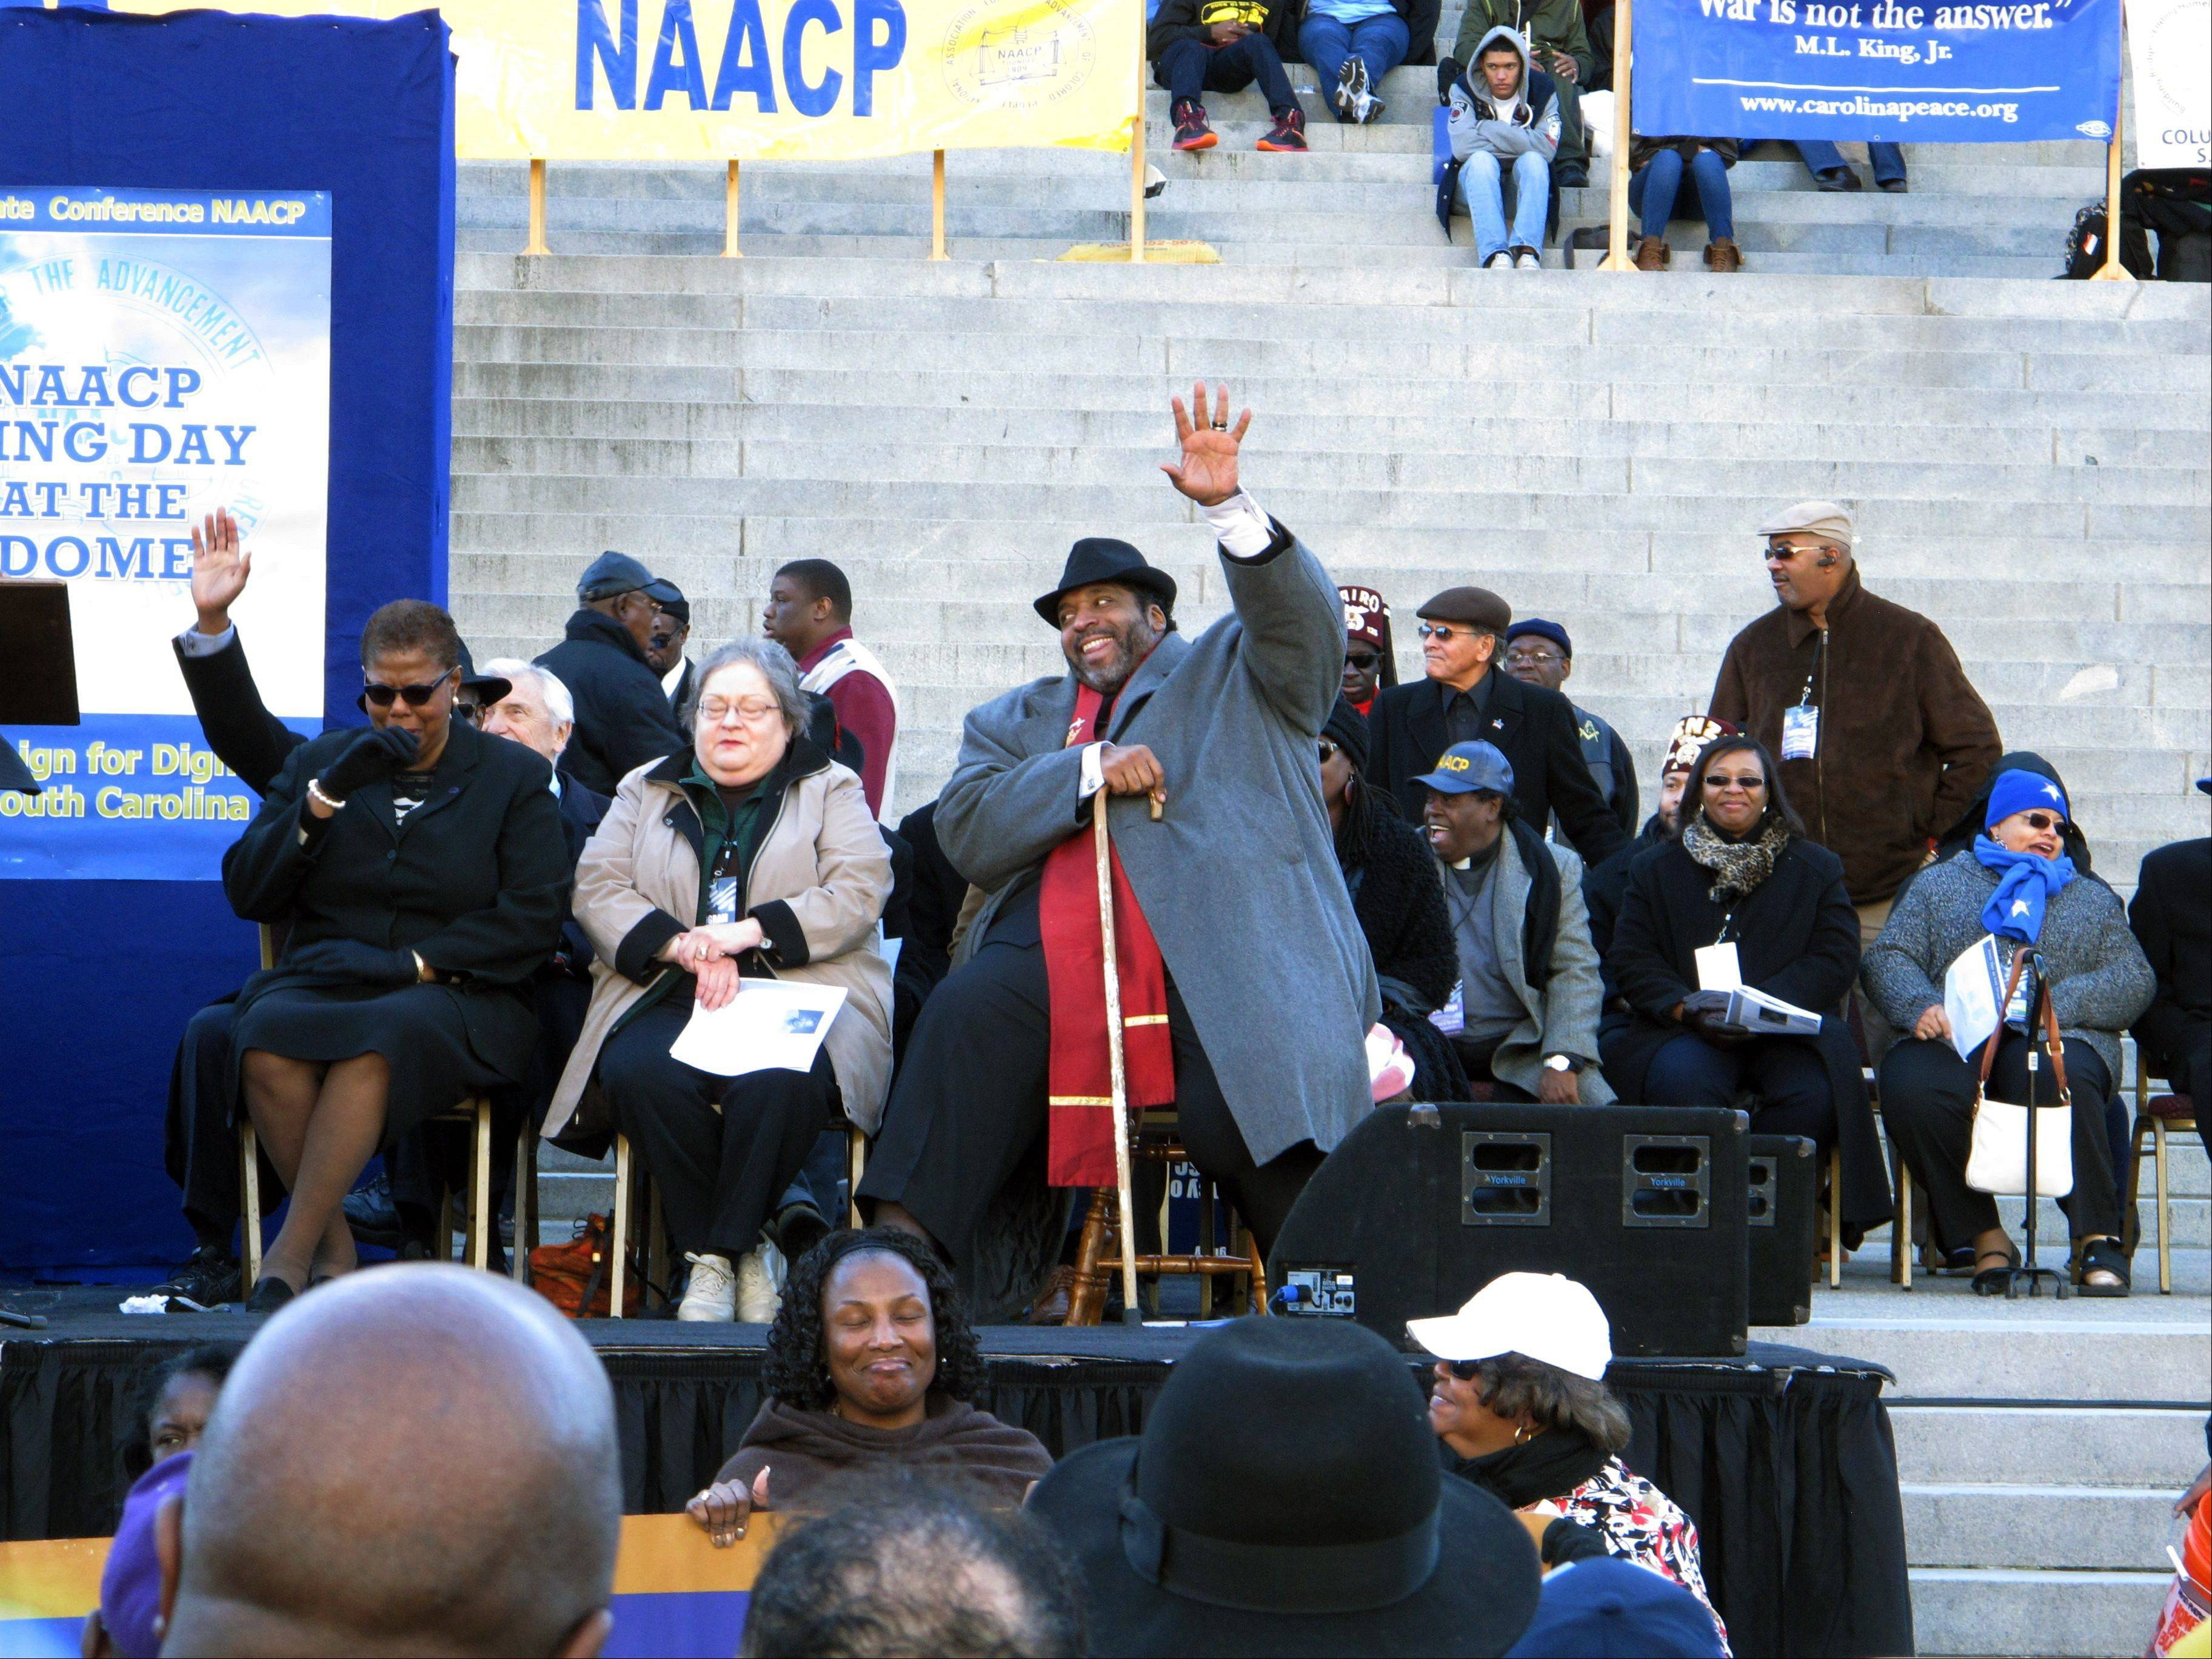 North Carolina NAACP President William Barber waves to the crowd as he waits to speak at the King Day celebration on Monday, Jan. 20, 2014, in Columbia, S.C. Barber was invited to speak about social justice.